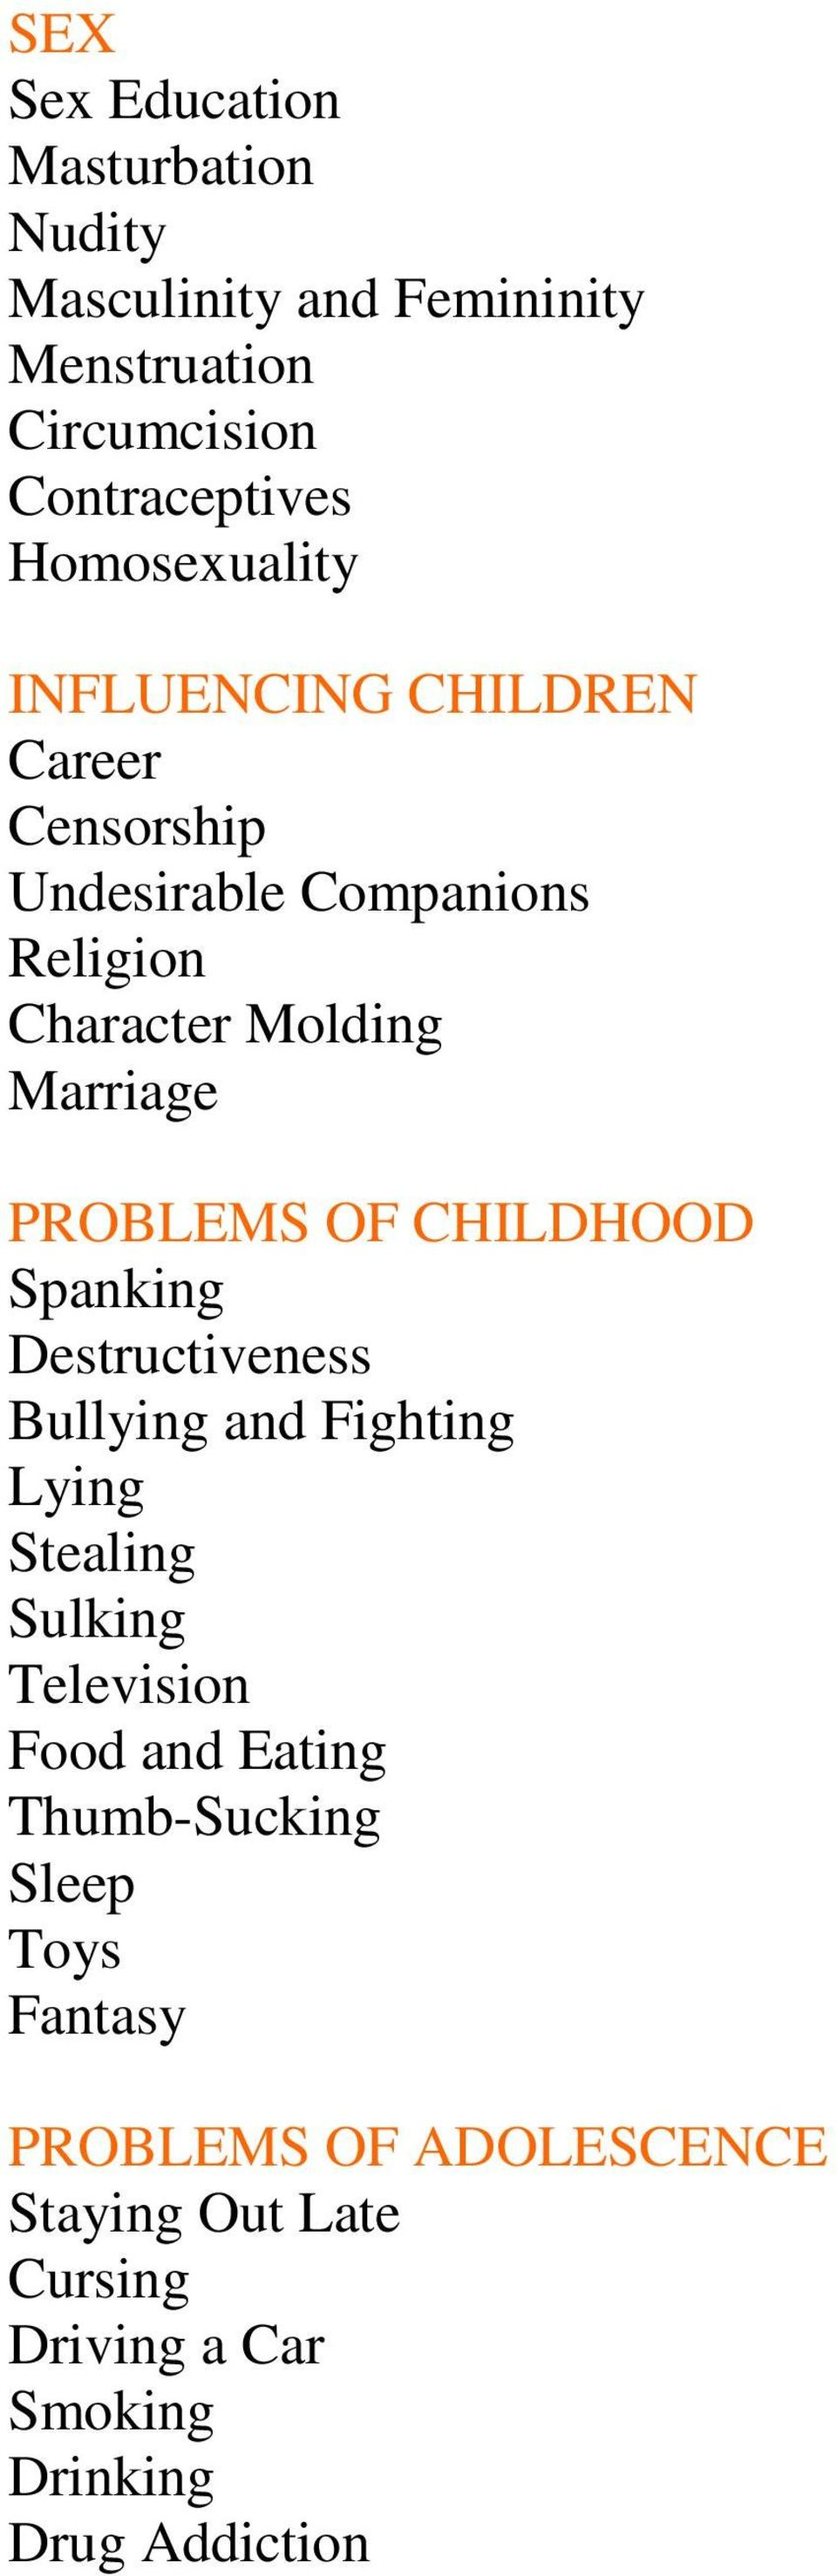 PROBLEMS OF CHILDHOOD Spanking Destructiveness Bullying and Fighting Lying Stealing Sulking Television Food and